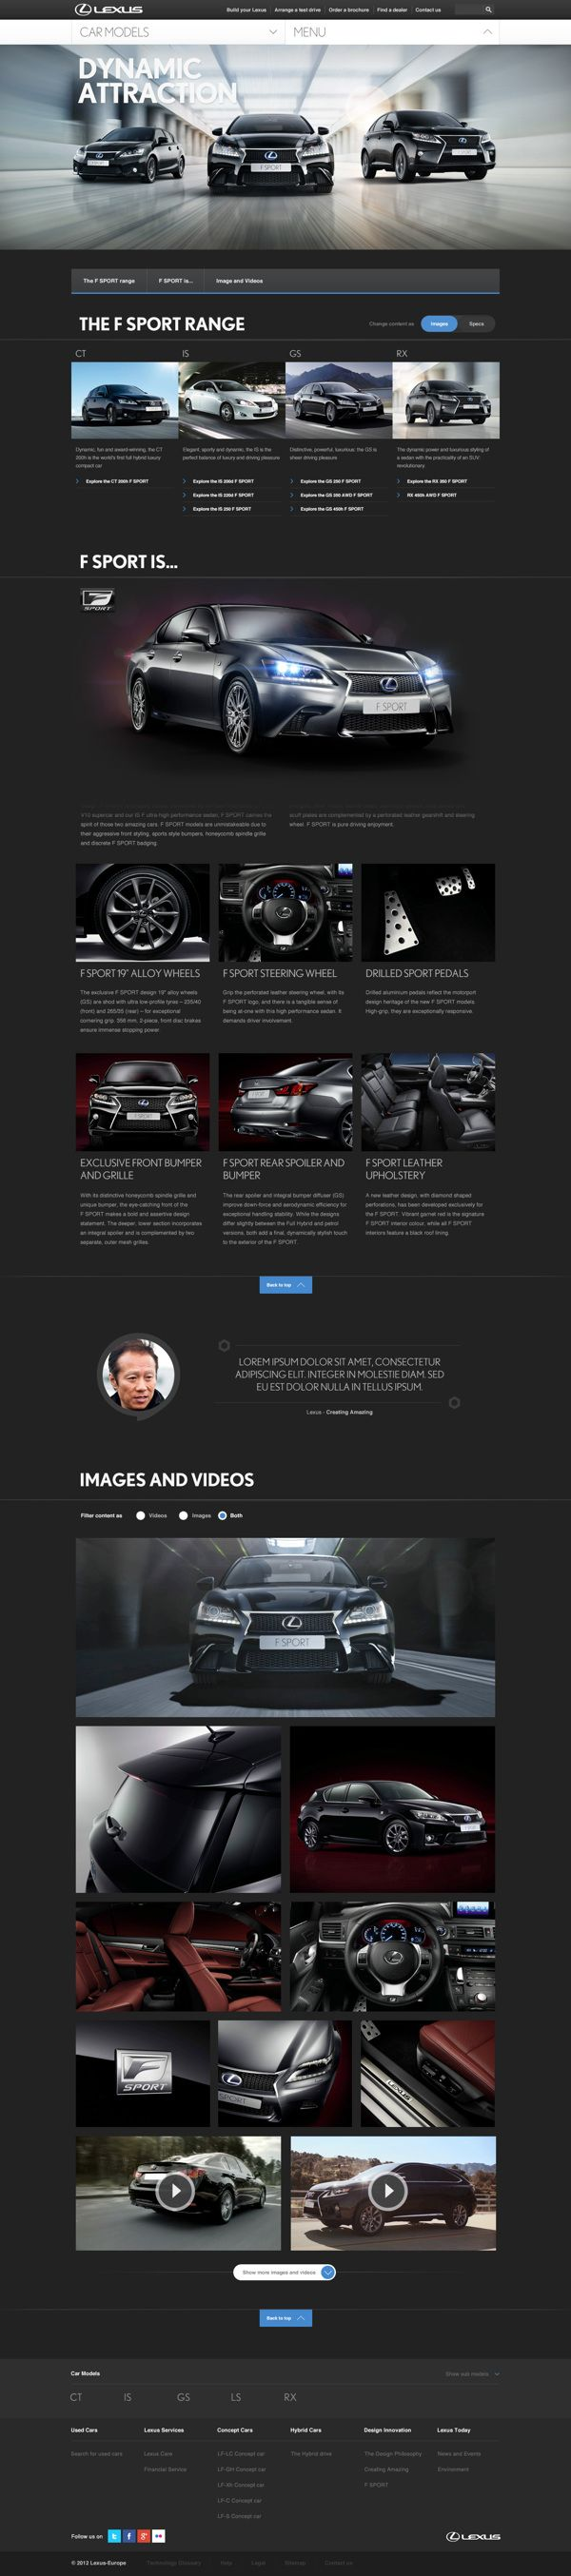 Cool Automotive Web Design On The Internet Lexus Automotive - Cool car websites